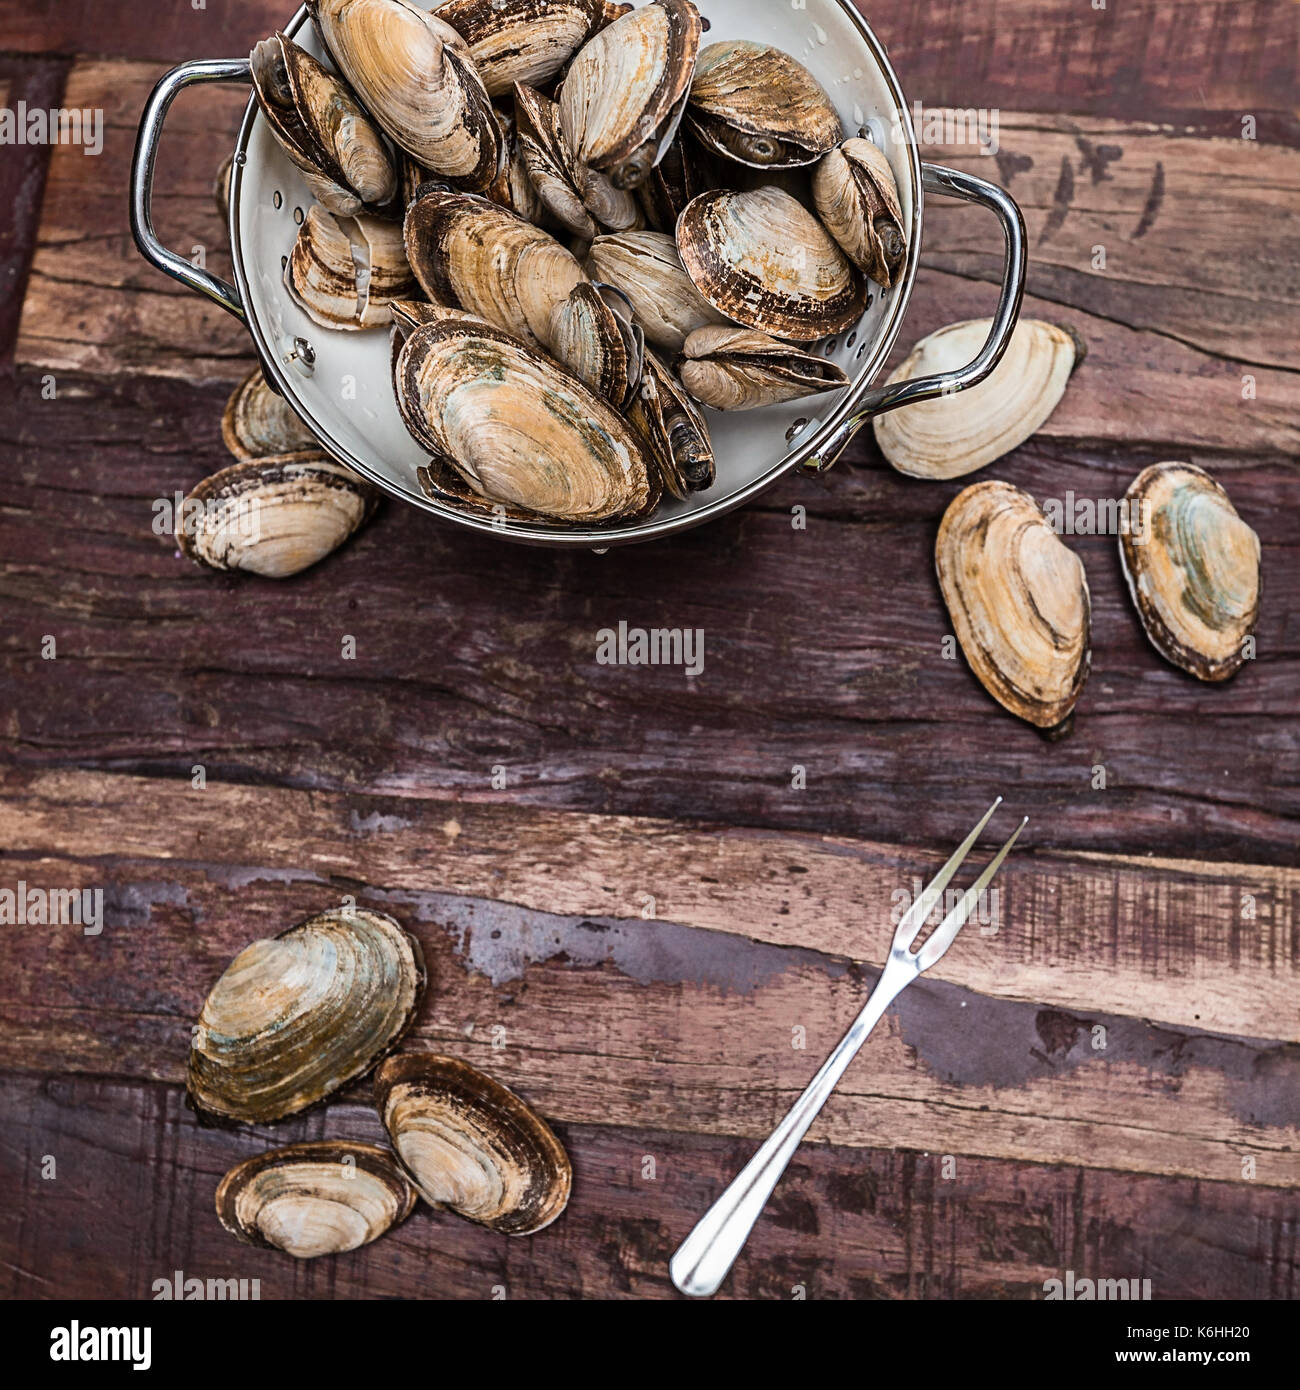 Steamer clams from New England in a whiten collider on a rustic table ready are cleaned and ready for cooking. Stock Photo